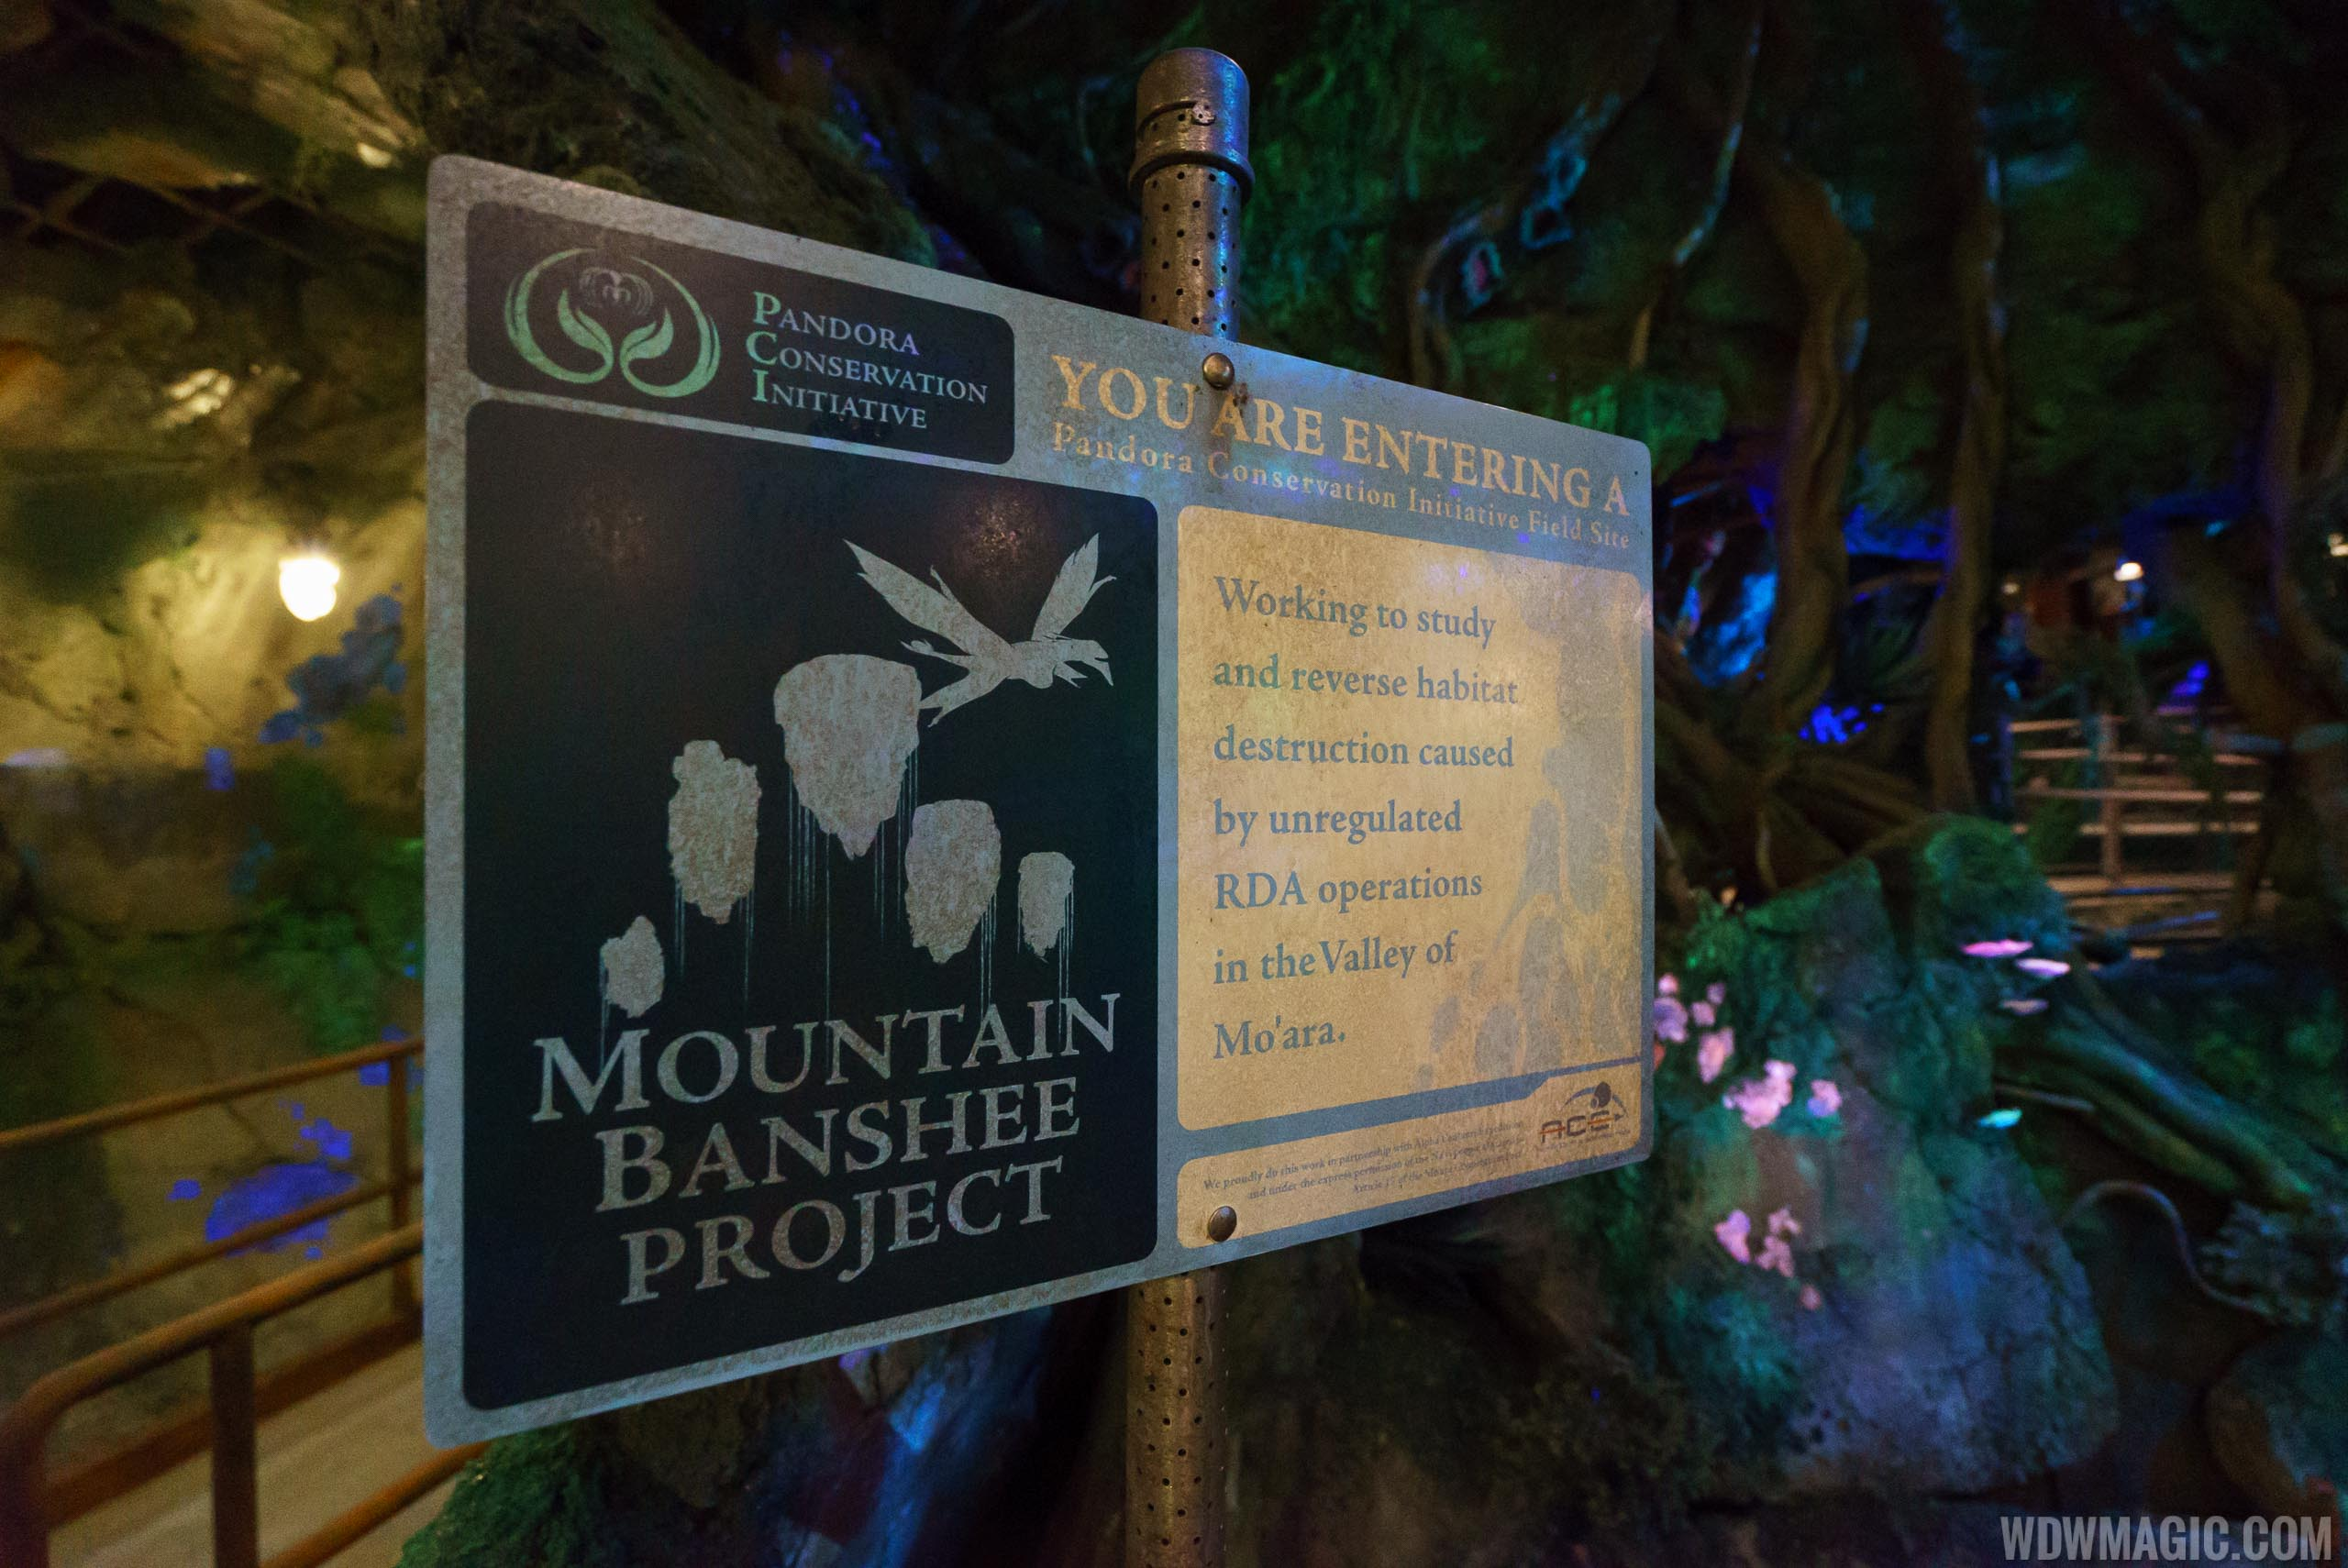 Pandora Conservation Initiative in the queue of Avatar Flight of Passage